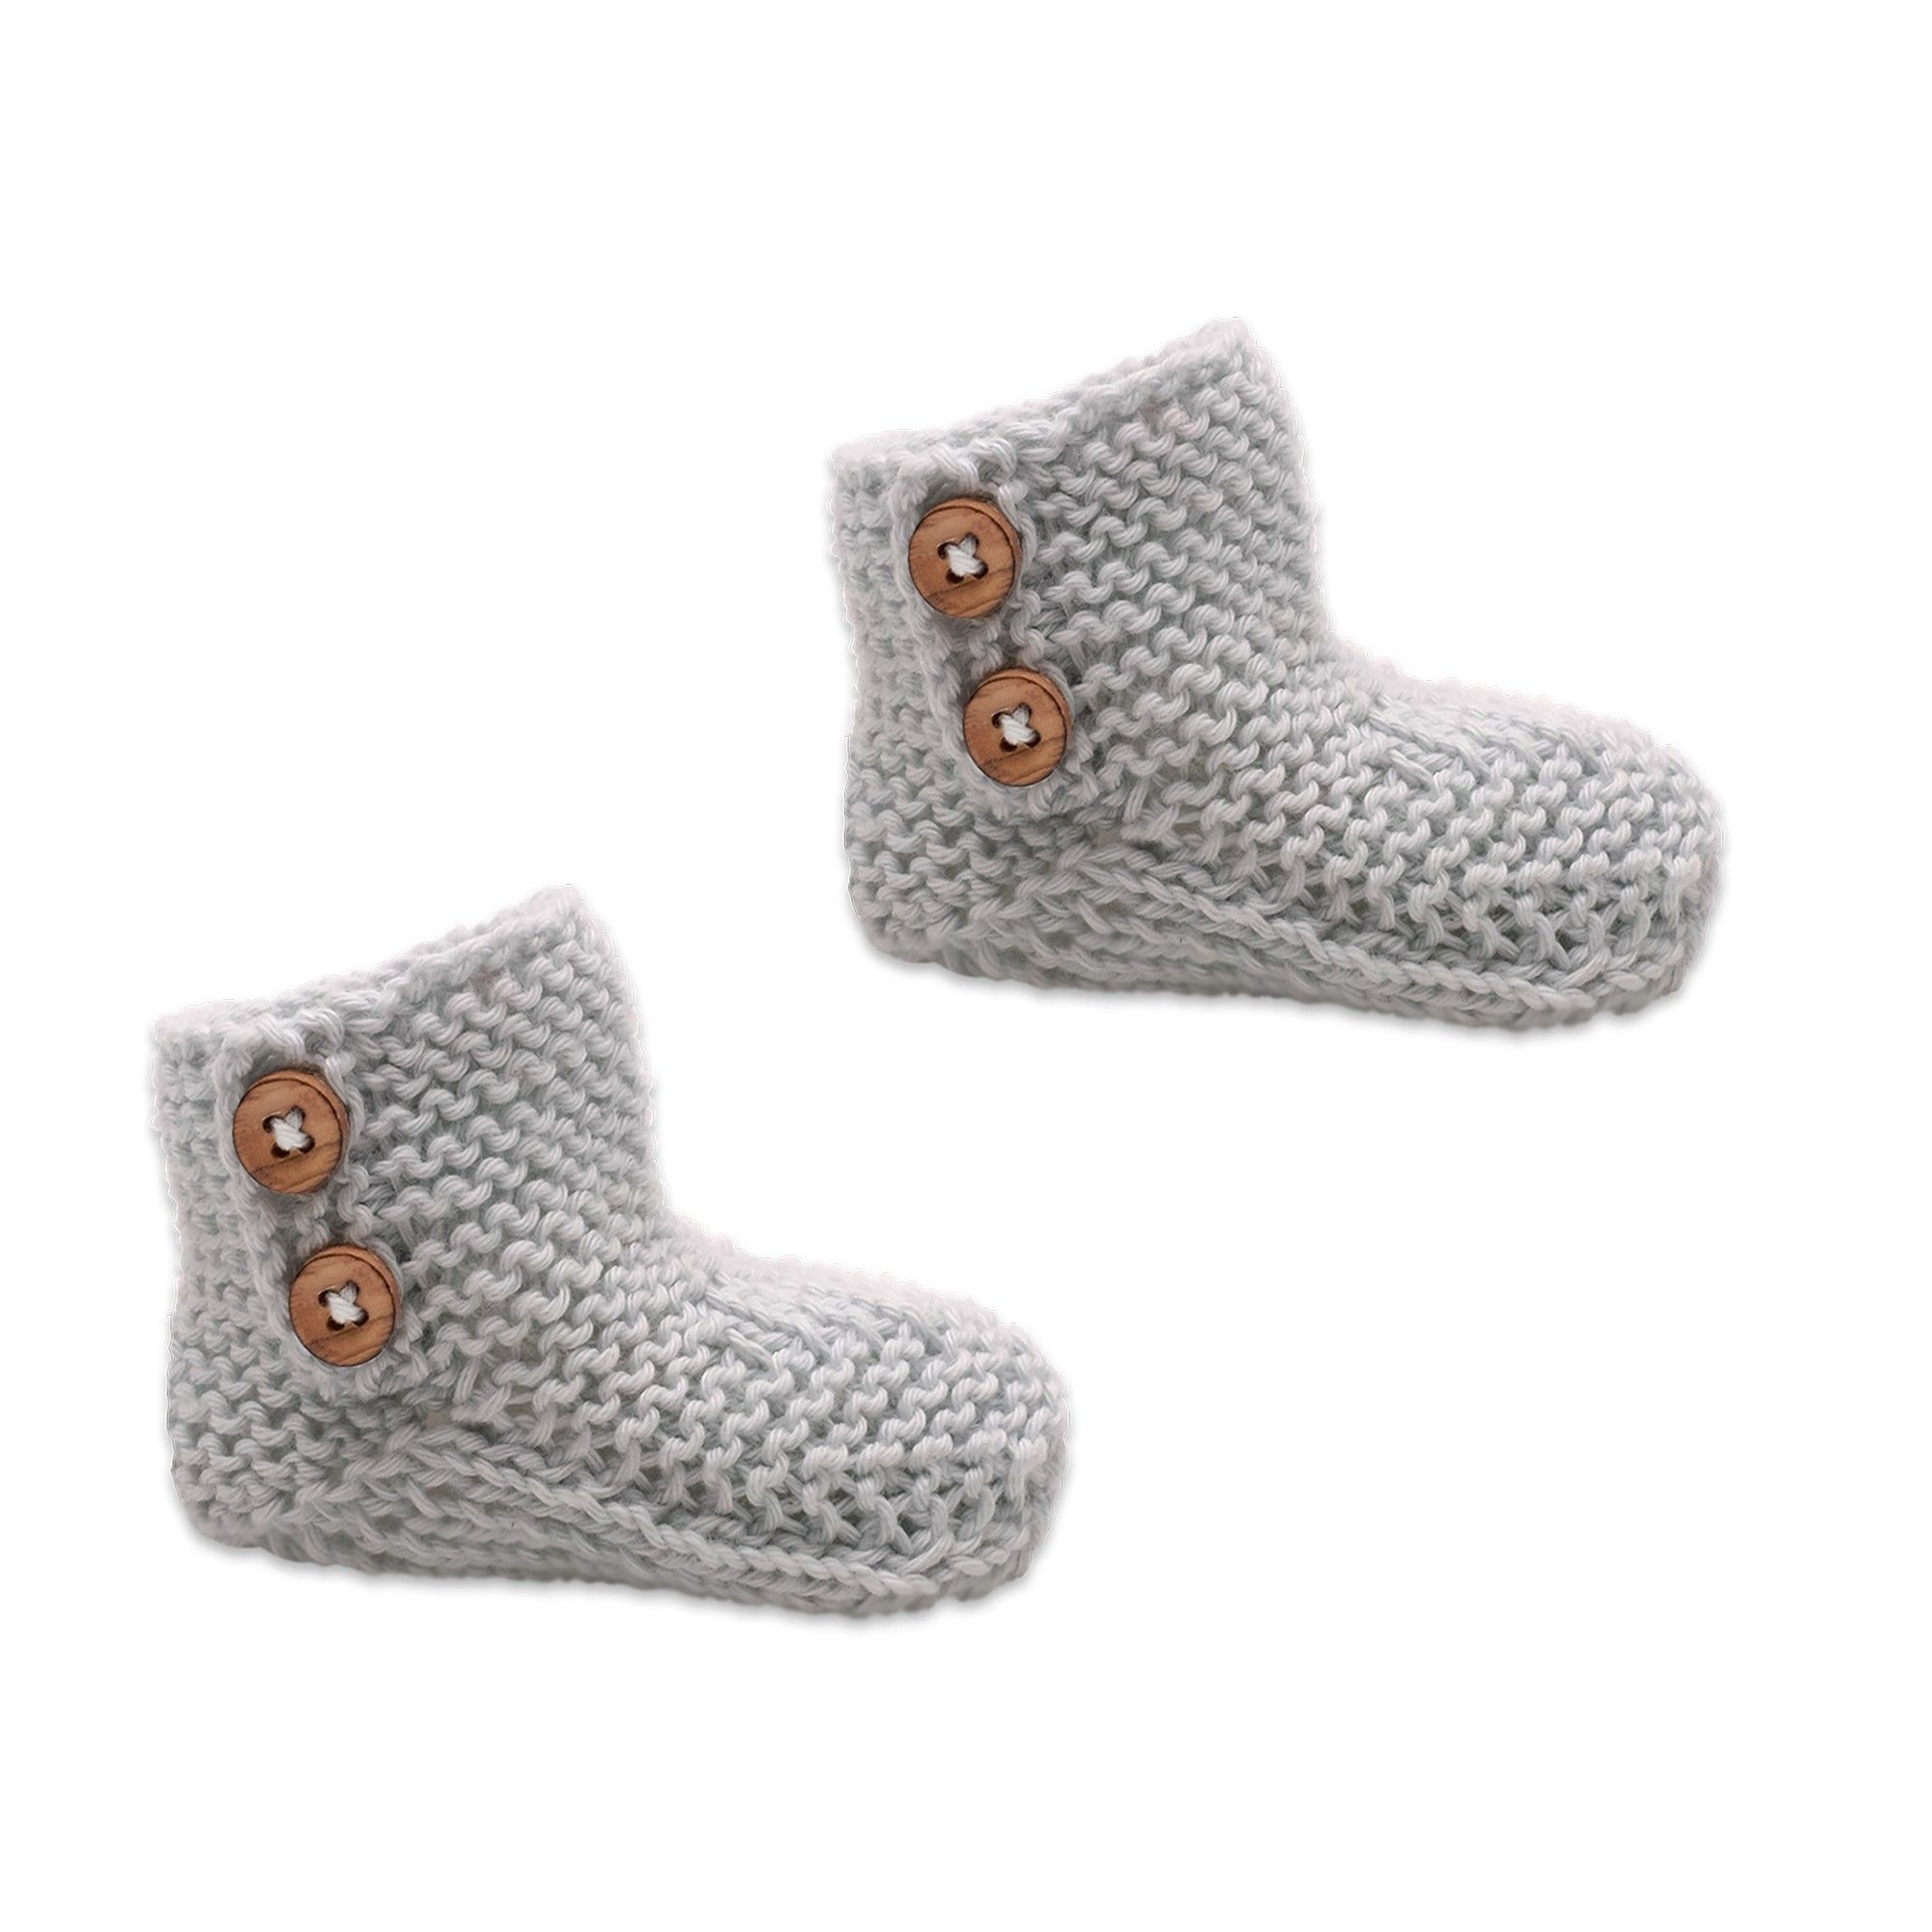 Pin by uusi baby on modern baby knits pinterest downloadable pdf free knitting pattern for baby uggs a cute free pattern for modern looking baby booties knit in one piece to minimise seamingweaving in bankloansurffo Image collections